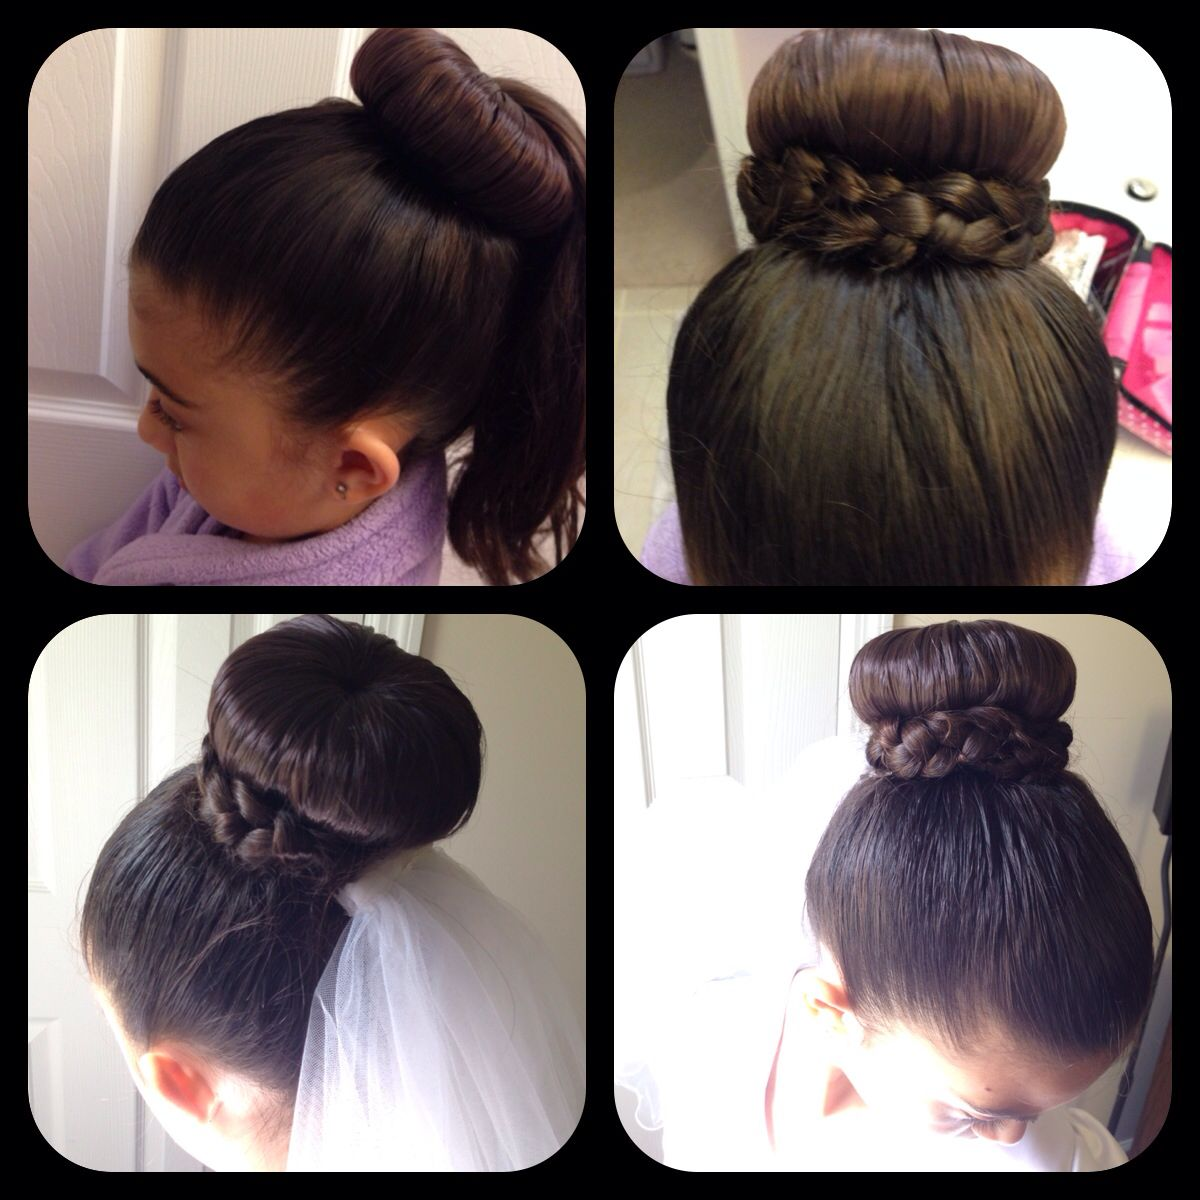 hairstyle| first communion | projects to try | communion